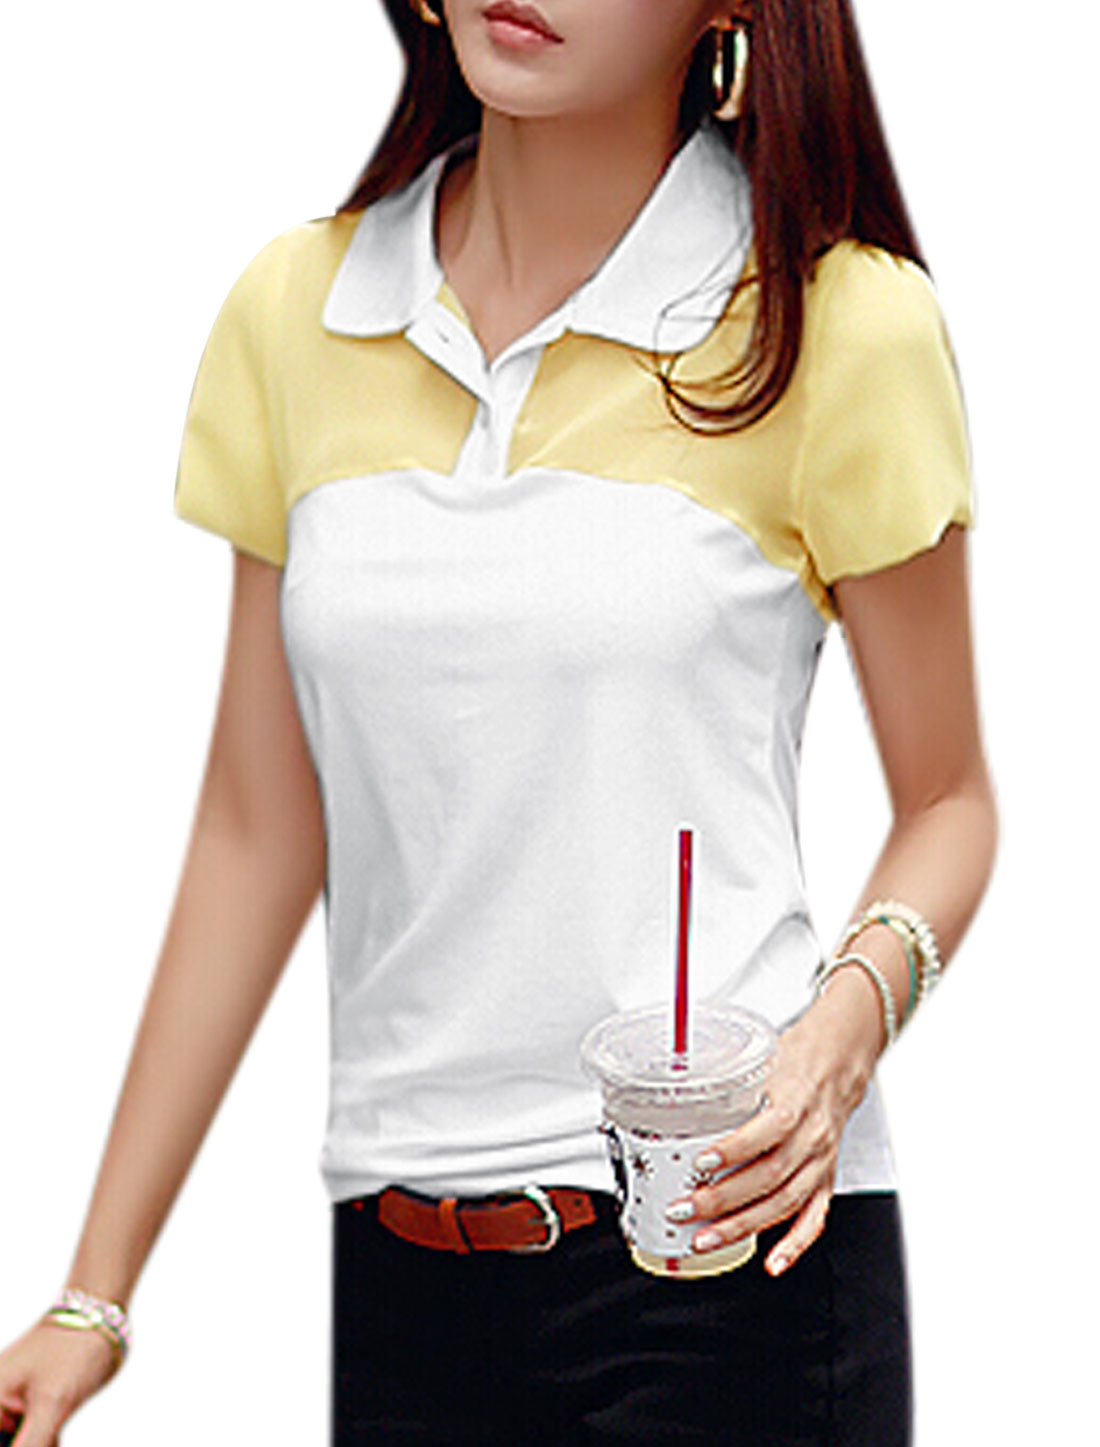 Lady Turn Down Collar Short Sleeves Tops Yellow White XS